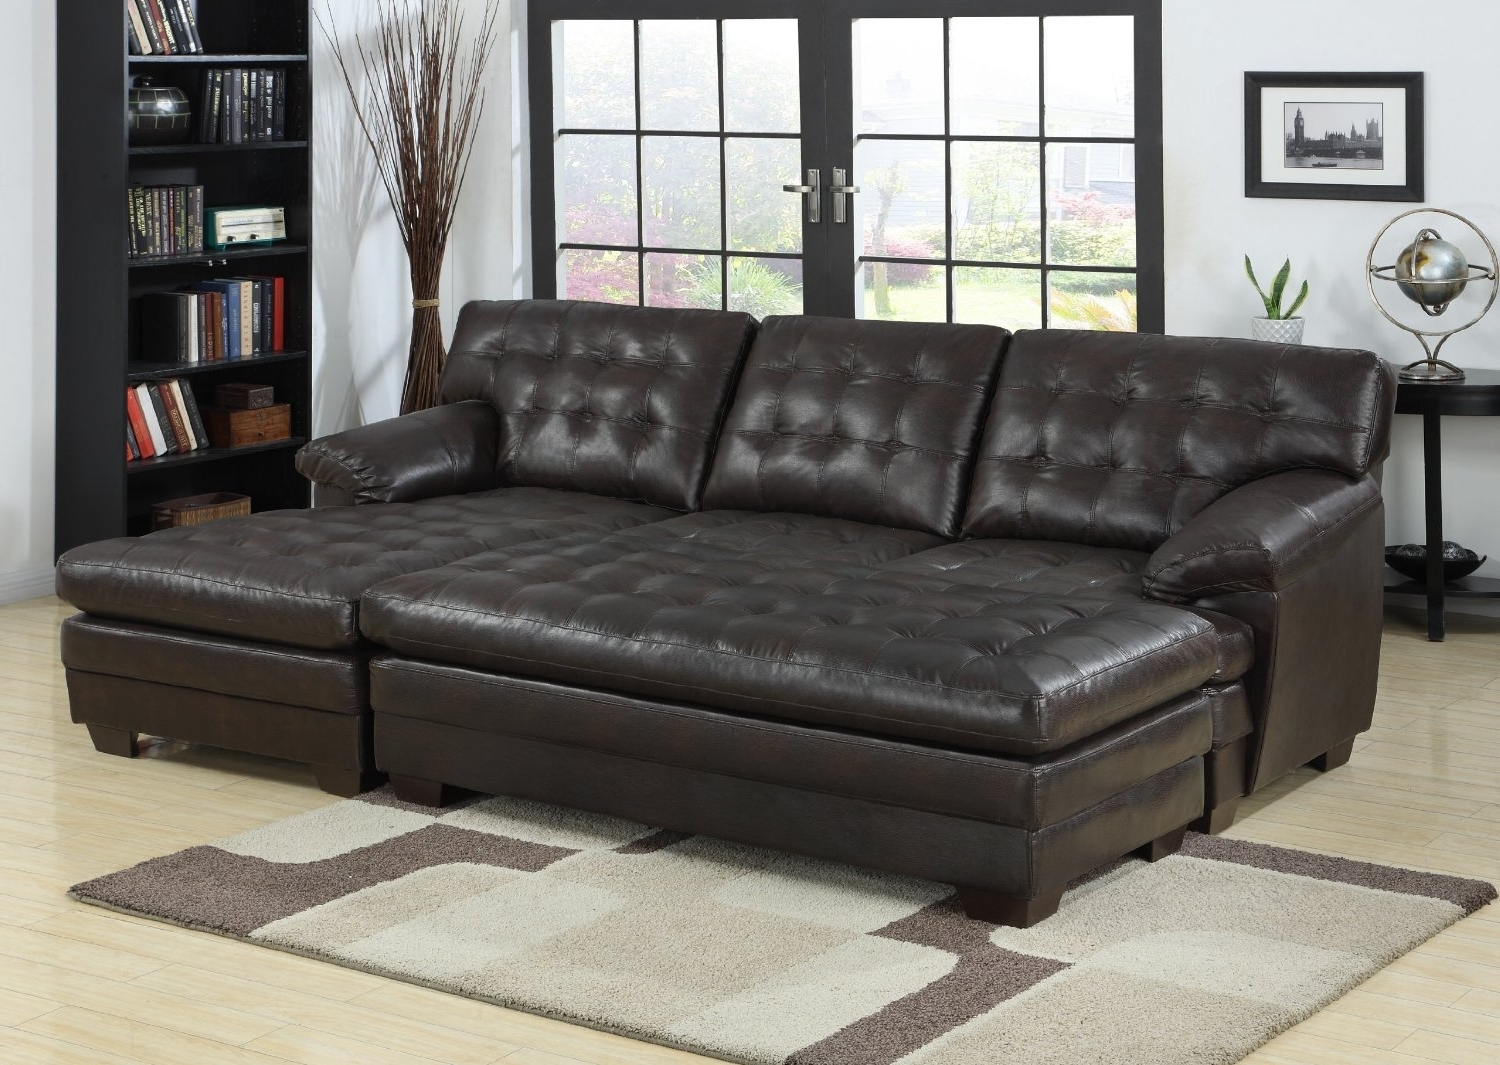 Popular Double Chaise Lounge Sofa Image Gallery — The Home Redesign : The Throughout Leather Chaise Lounge Sofas (View 5 of 15)